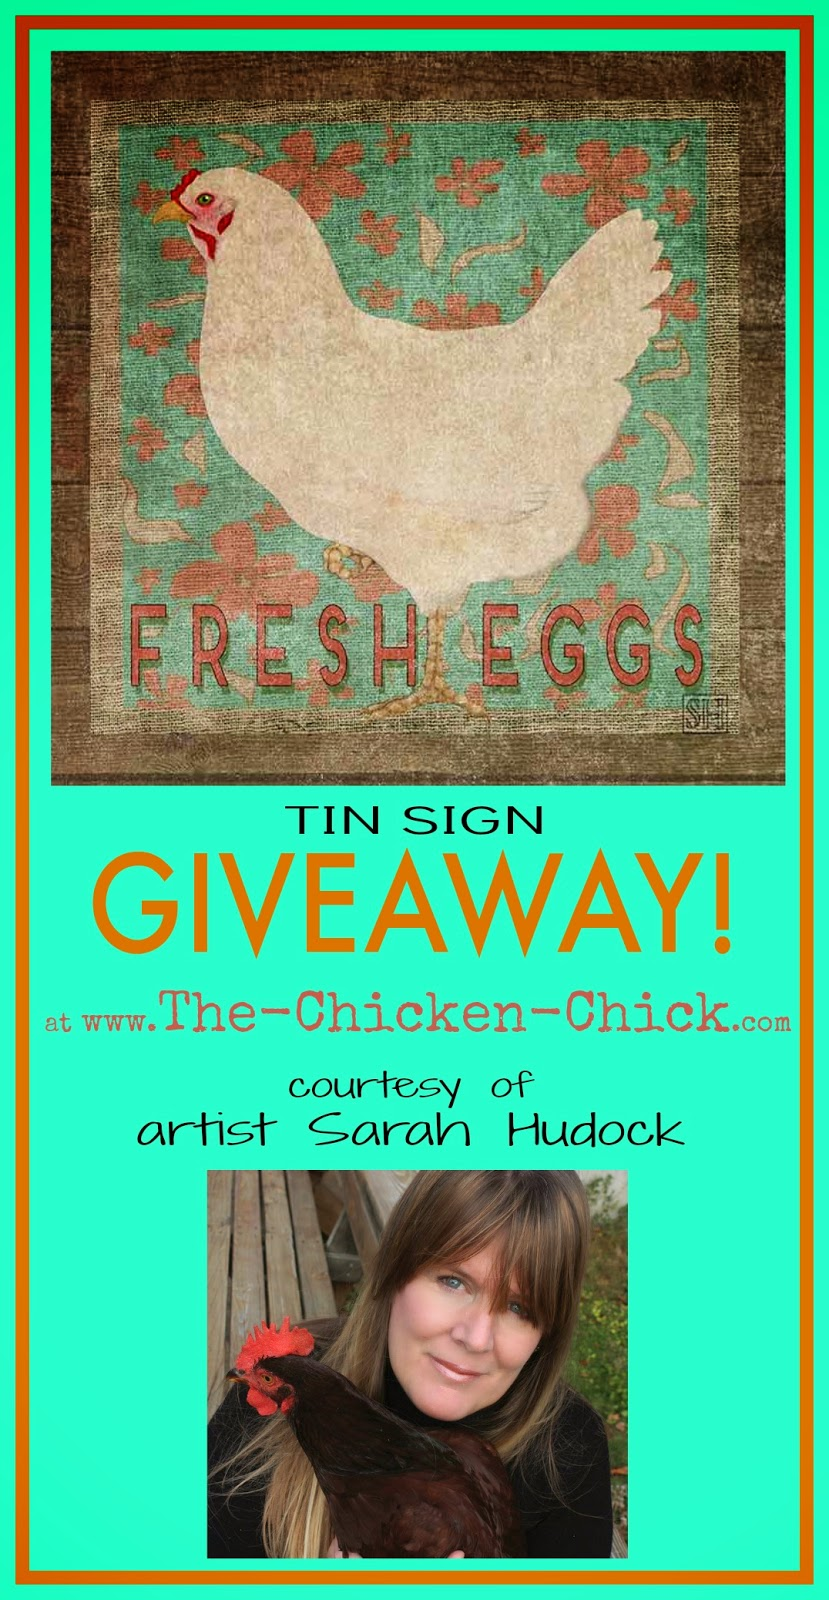 Chicken Art Giveaway, courtesy of artist Sarah Hudock at The Chicken Chick®